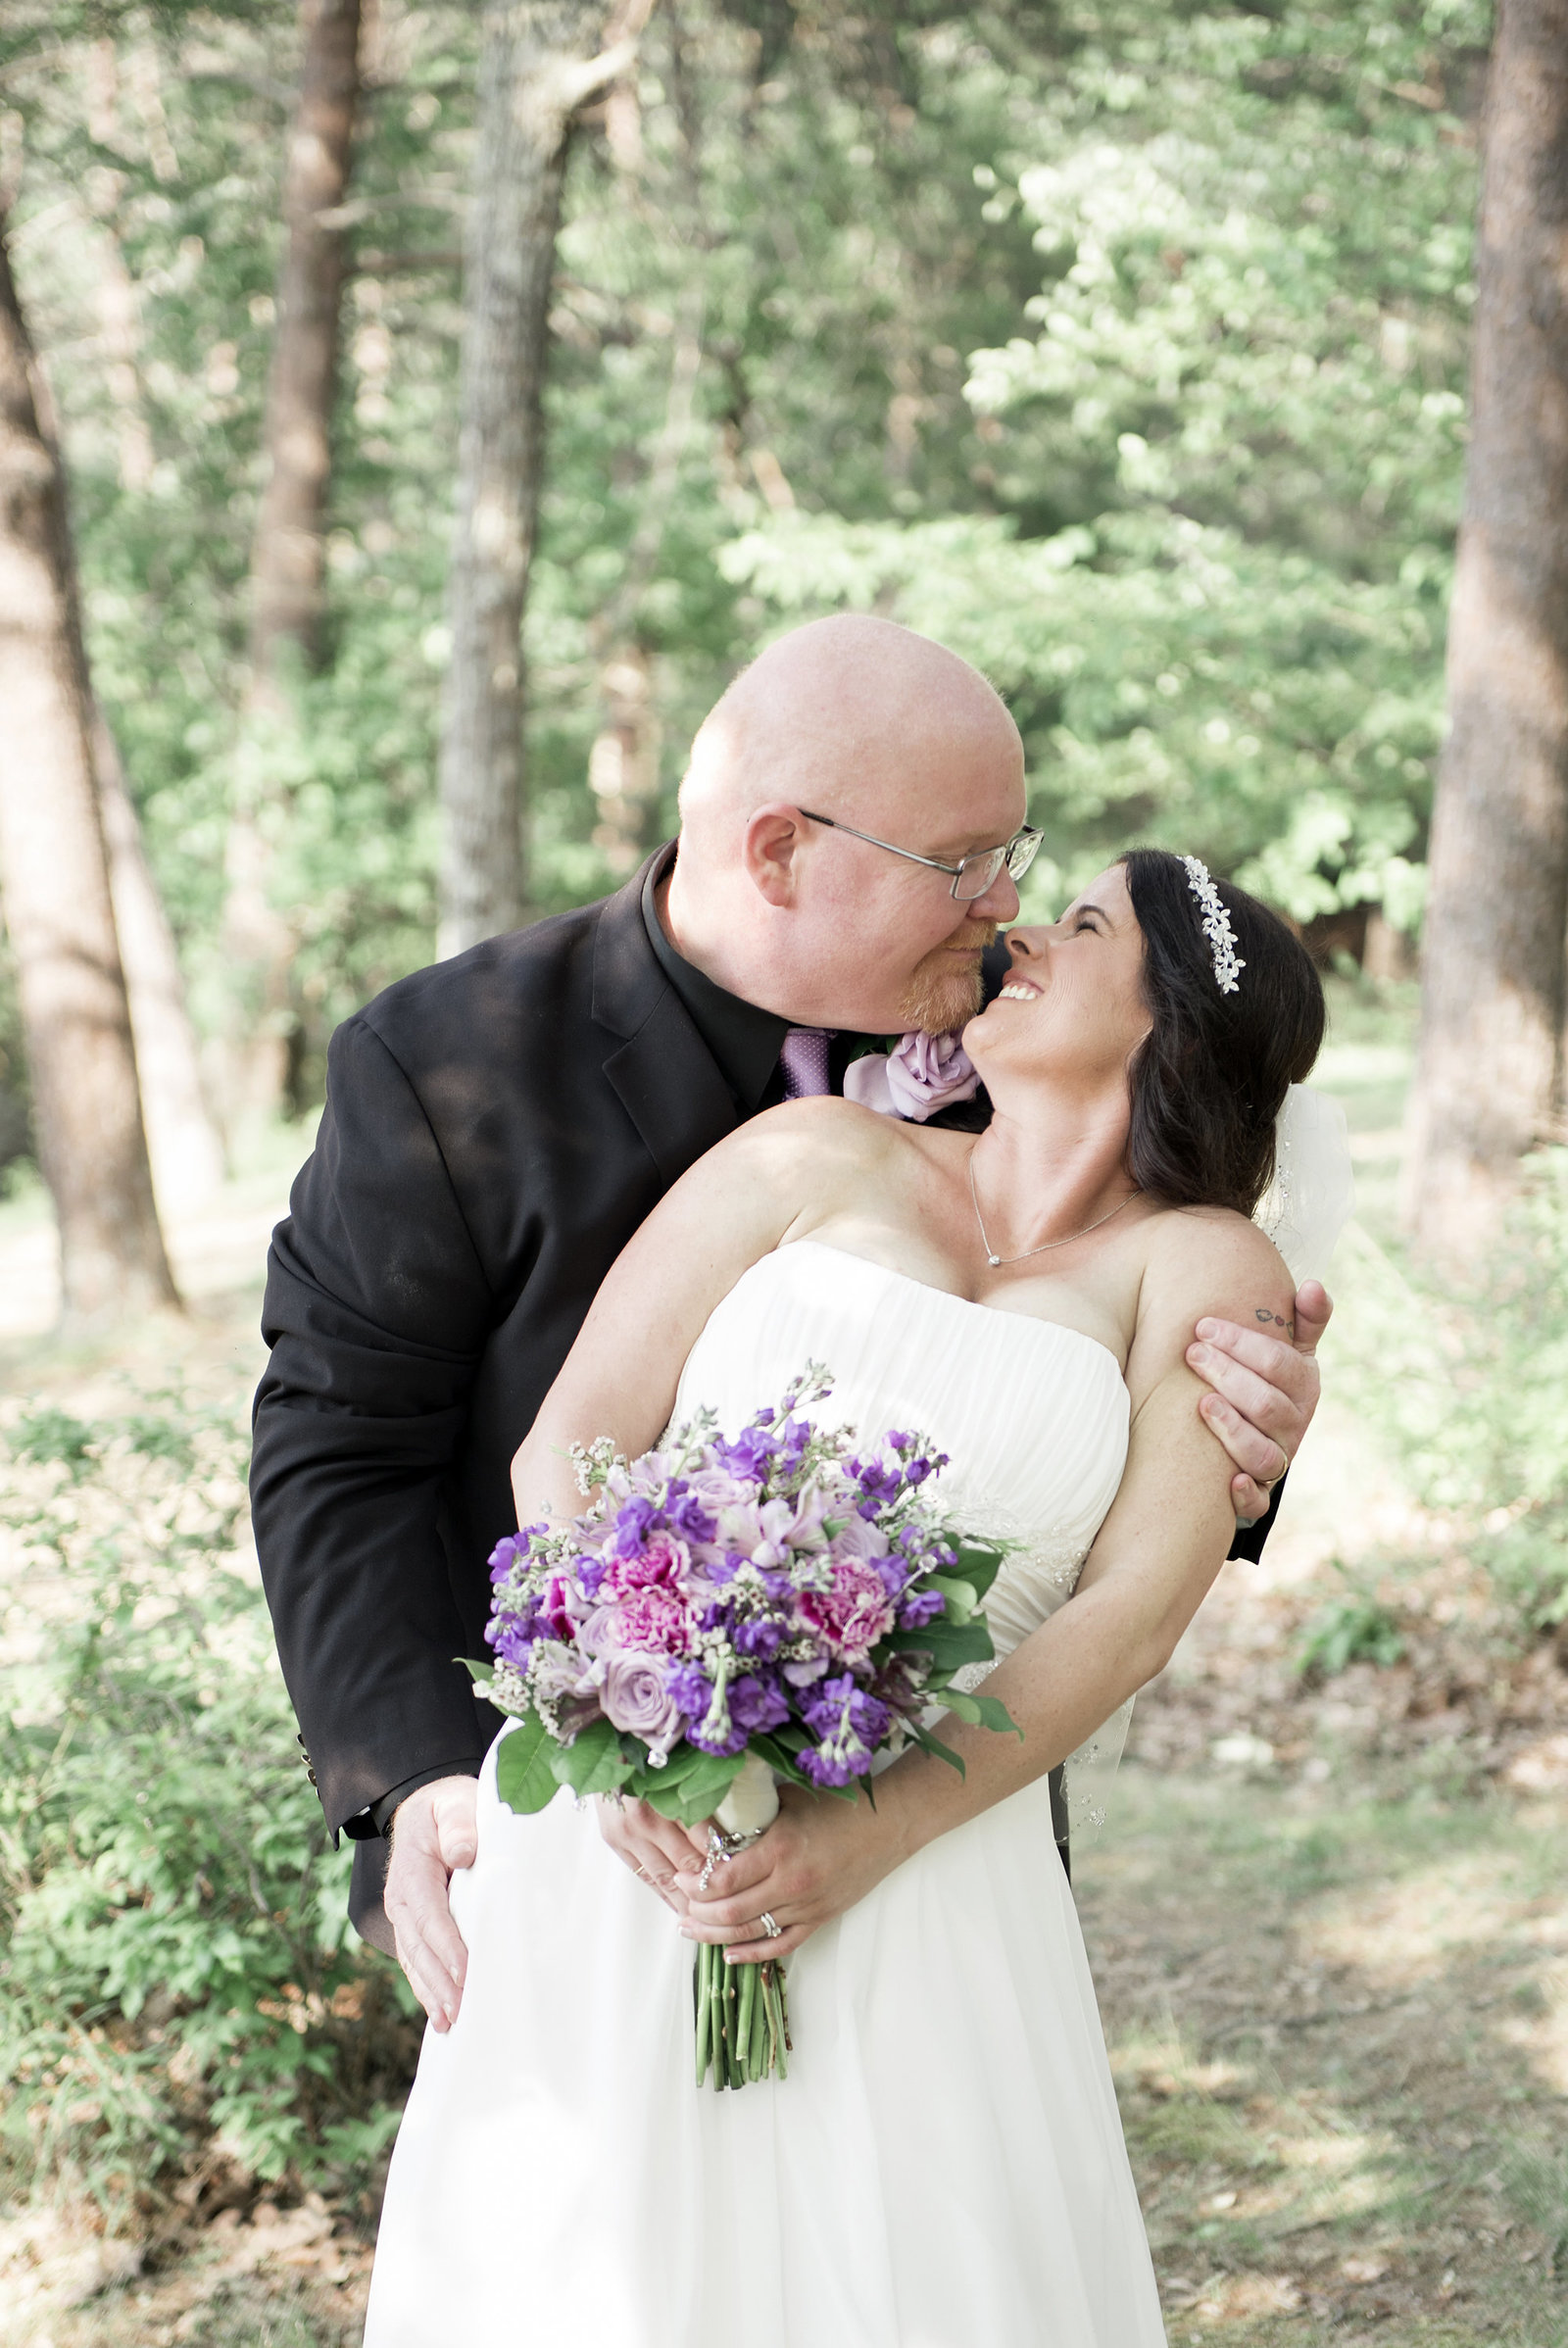 19Jenn and Thomas Wedding Cloudland Canyon DSC_3565croppedwebsite